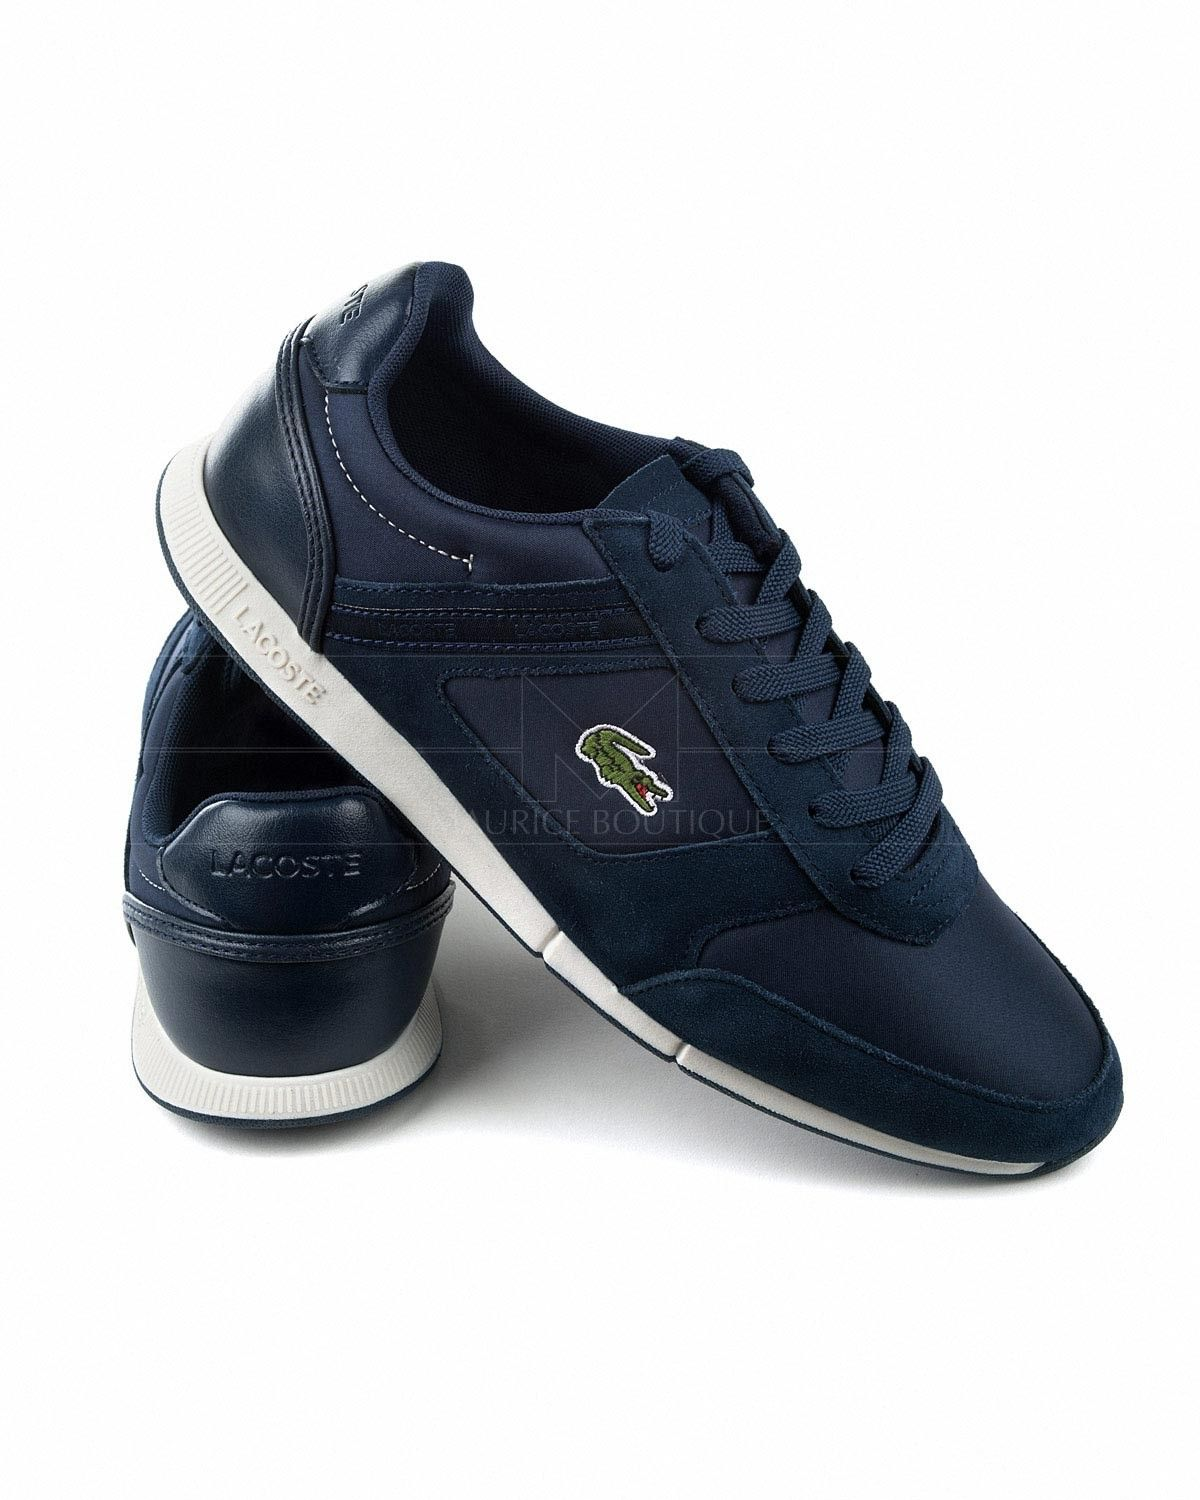 huge discount b2180 5694a Lacoste Menerva Sport Trainers - Navy Blue in 2019   Sneakers   Pinterest    Lacoste shoes, Lacoste trainers and Lacoste